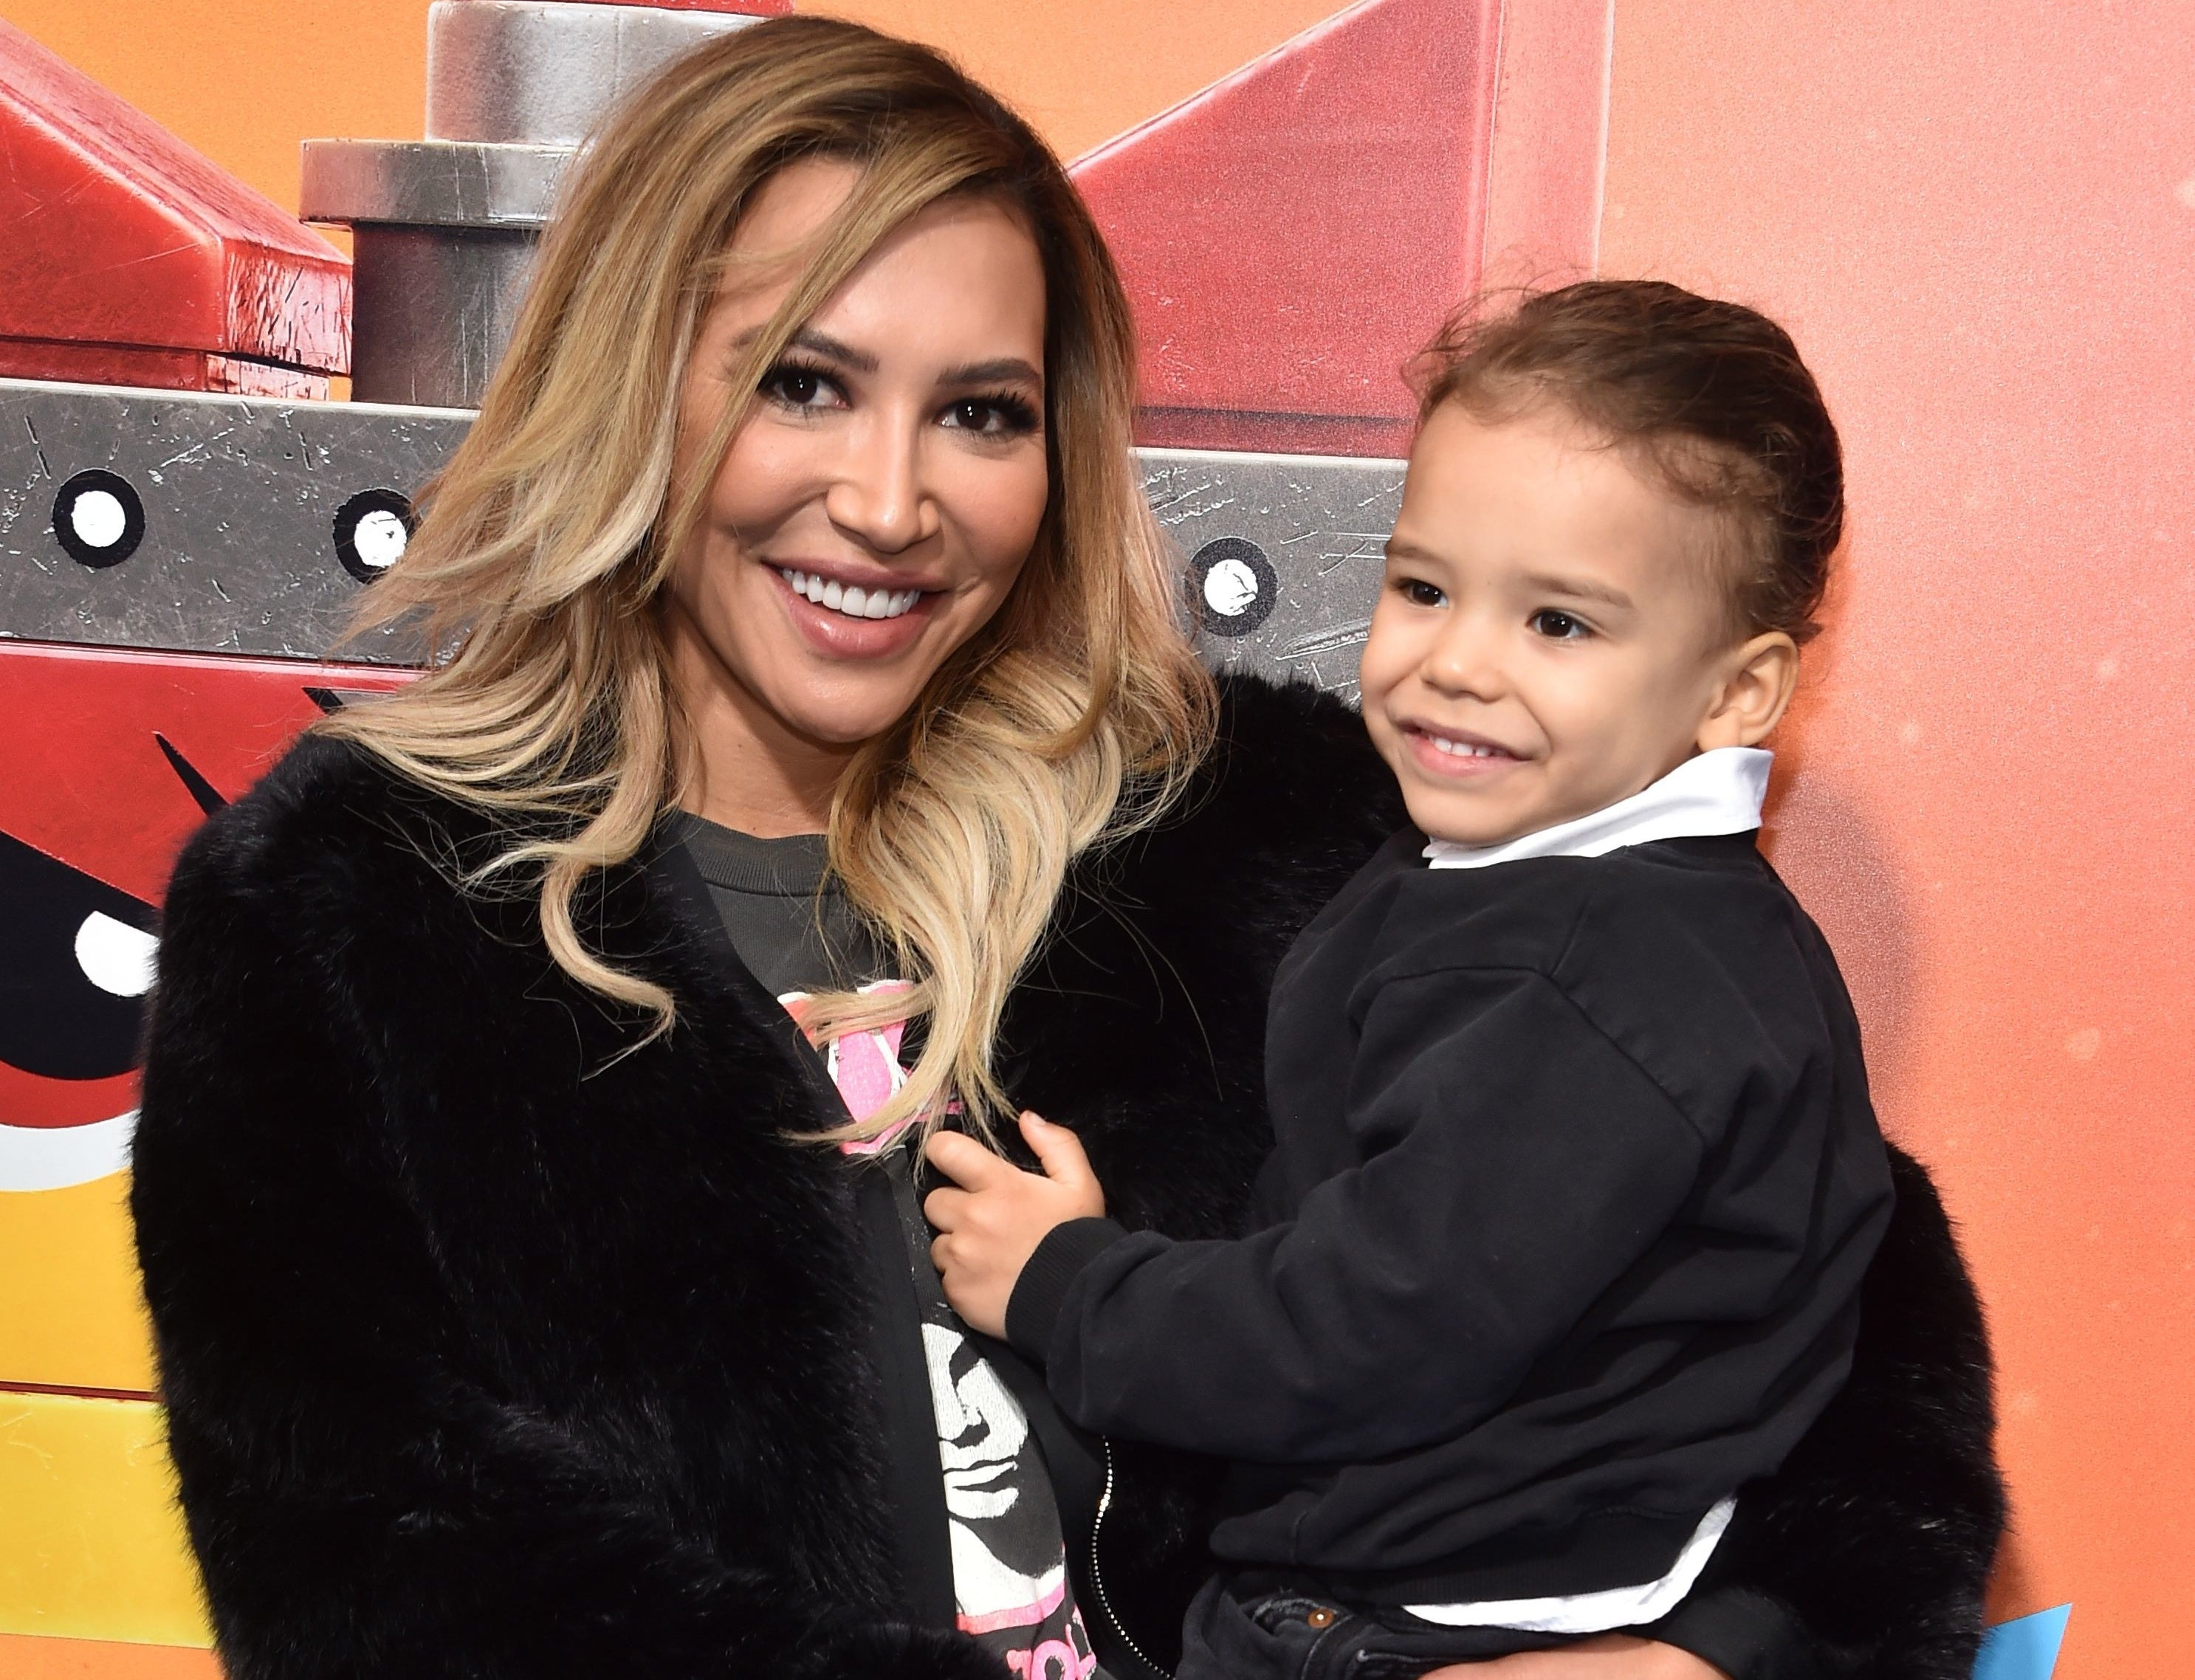 Naya poses with her son at movie premiere